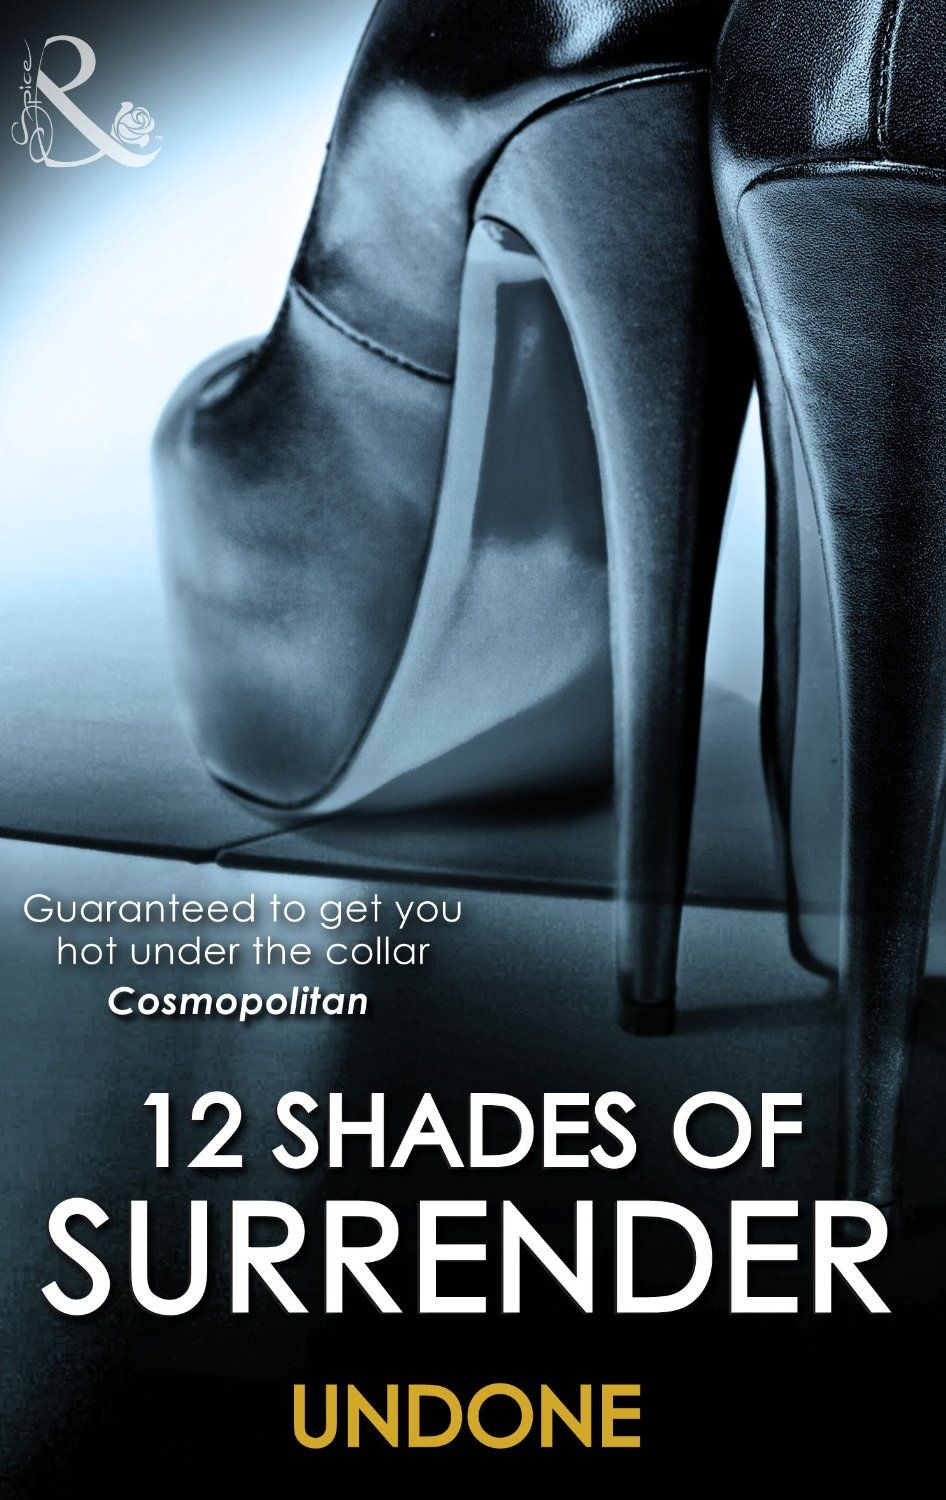 12 Shades of Surrender by Various authors.